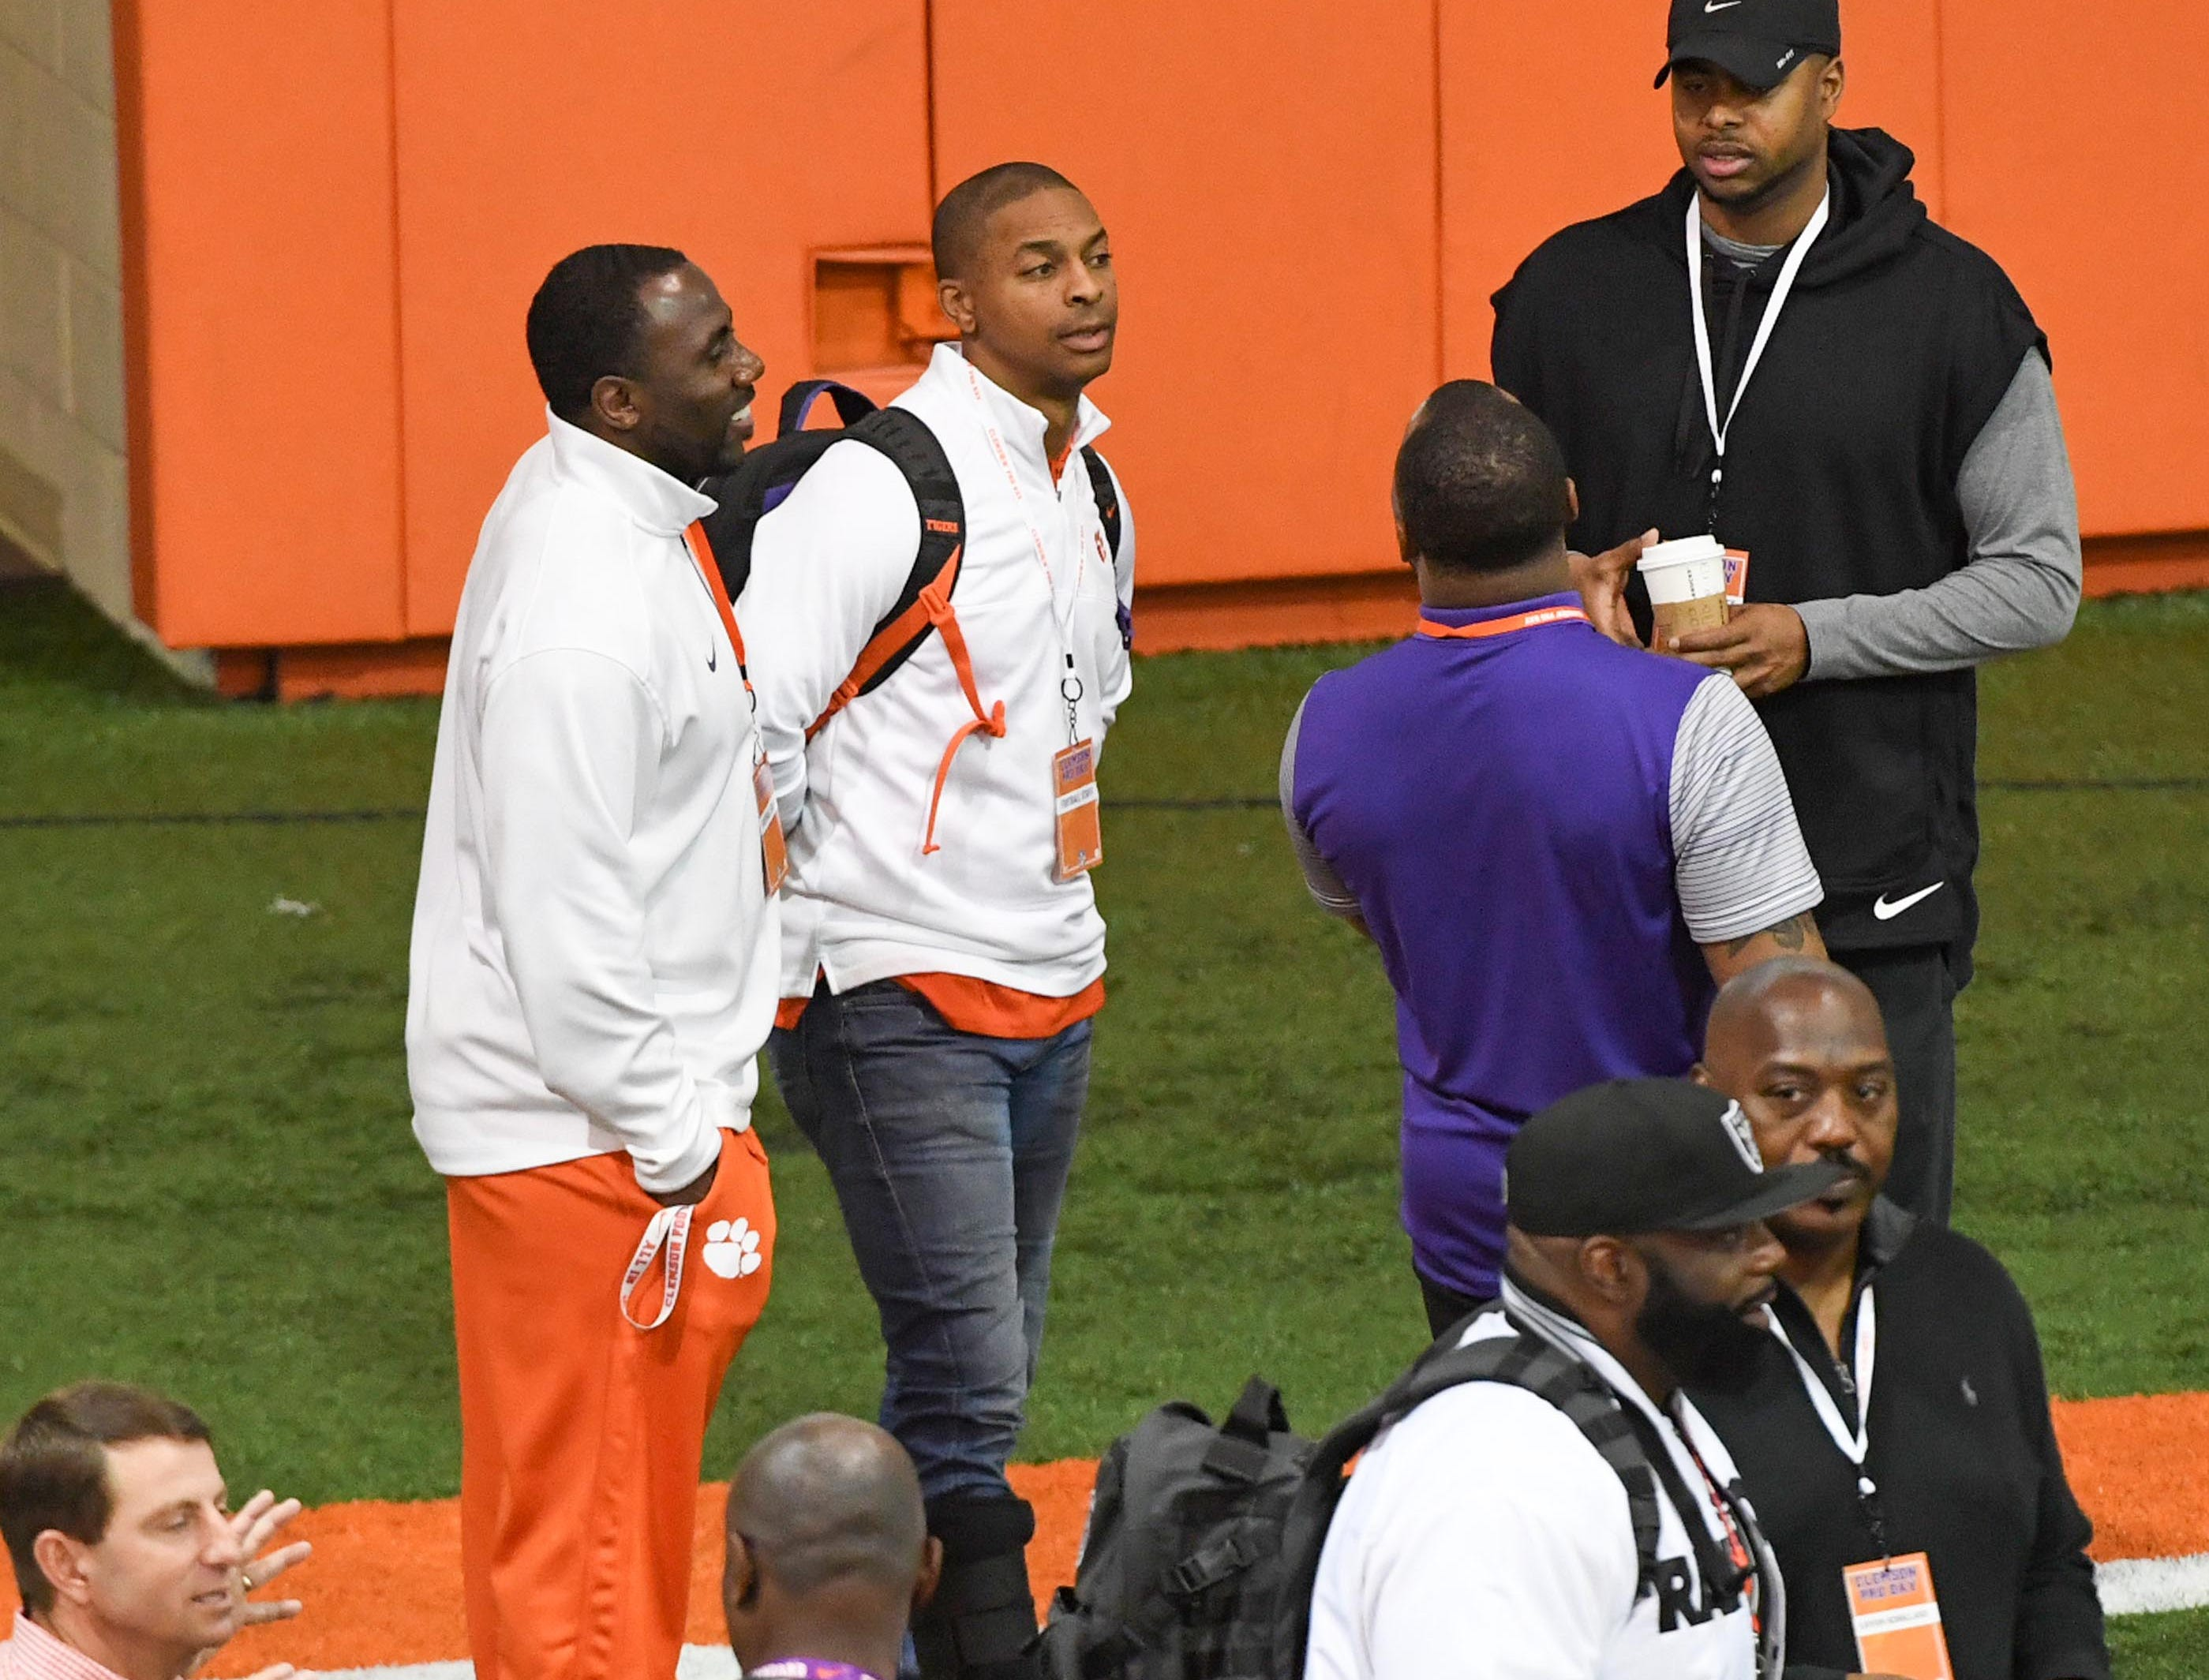 CJ Spiller , left, watches during Clemson pro day at the Poe Indoor Facility in Clemson Thursday, March 14, 2019.